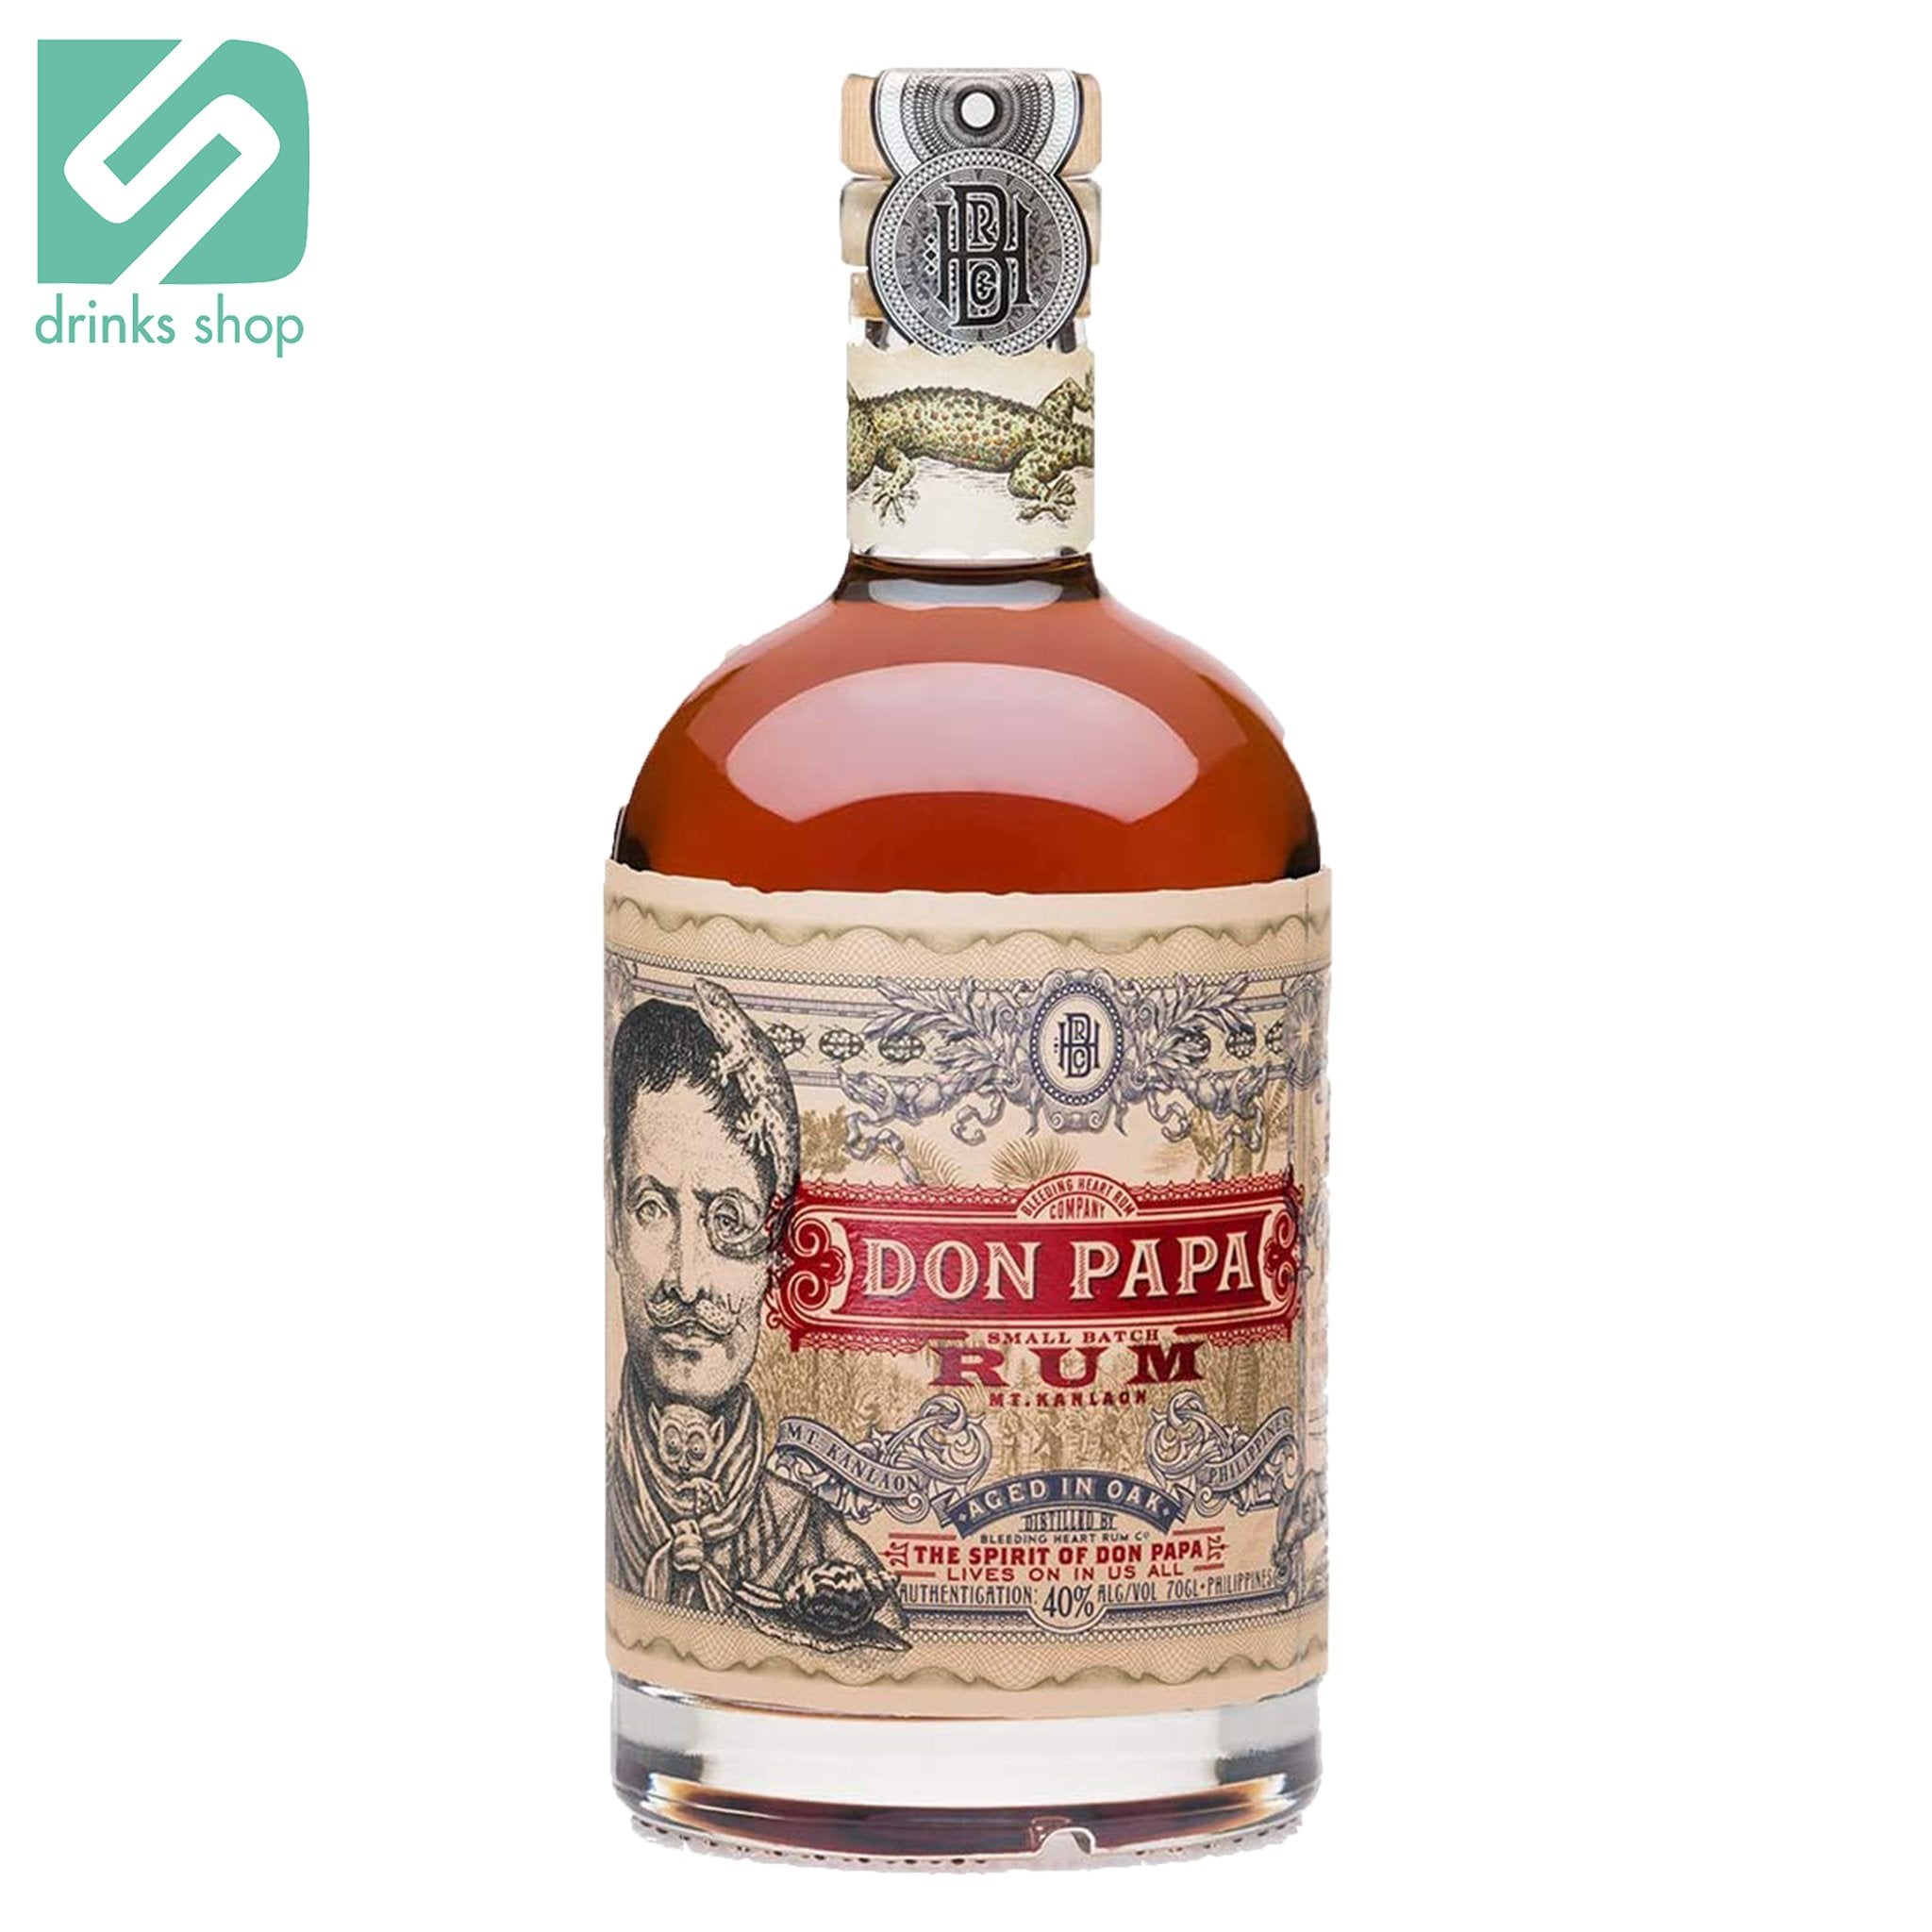 Don Papa Aged in Oak 70cl, Rum - Image 1